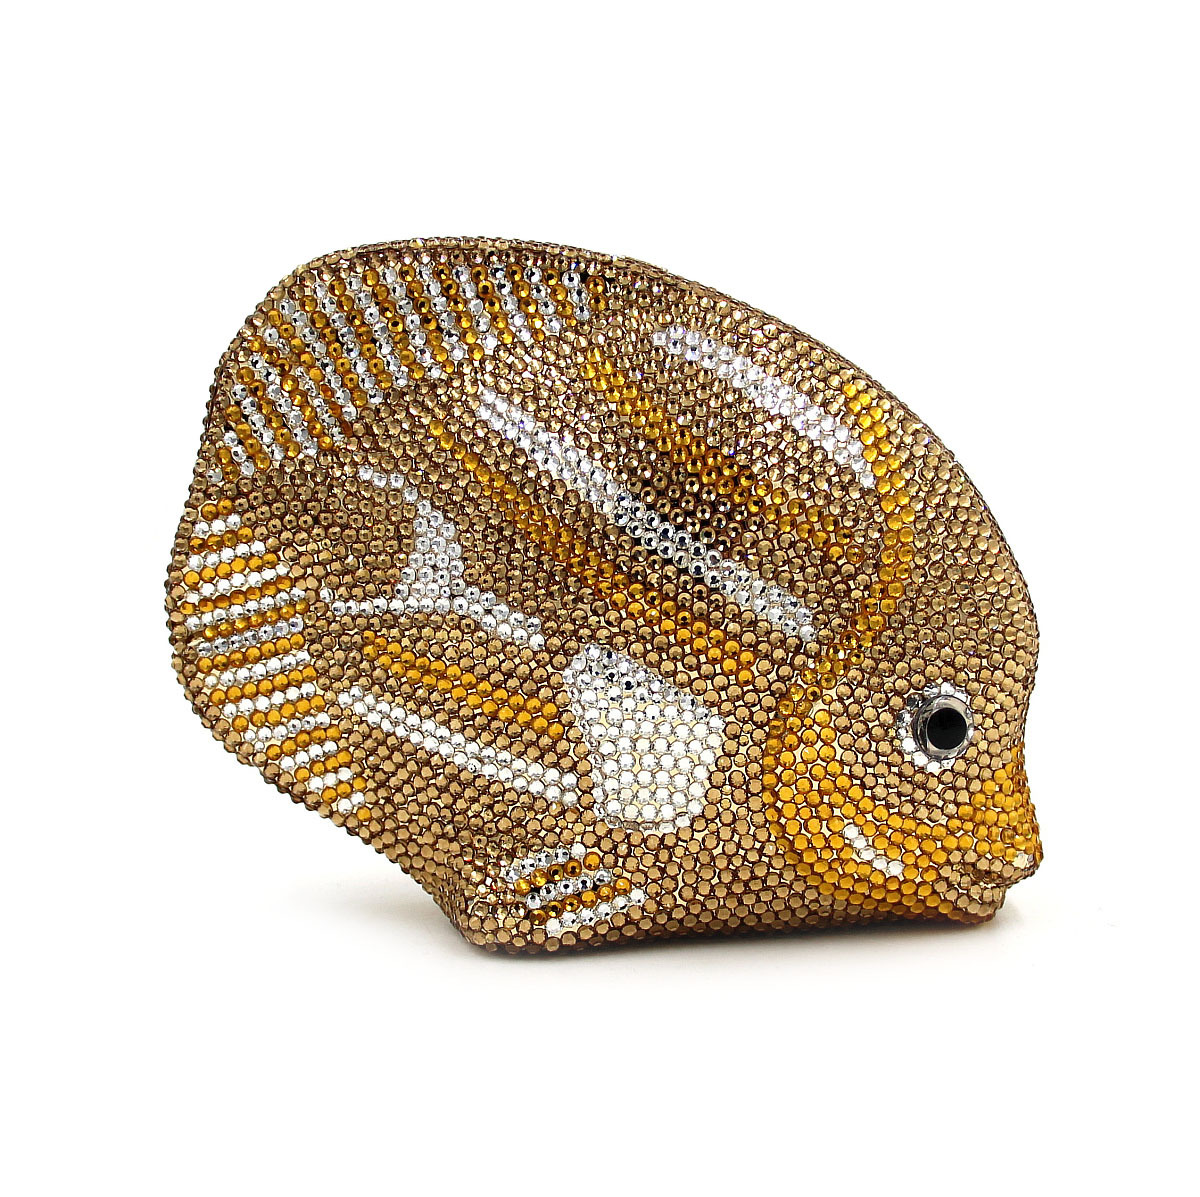 2017 New Flounder Day Clutches Luxury Full Diamonds Wedding Party Dinner Bag Handbag Crystal Women Evening Bags Handbags Purses women luxury rhinestone clutch evening handbag ladies crystal wedding purses dinner party bag gold